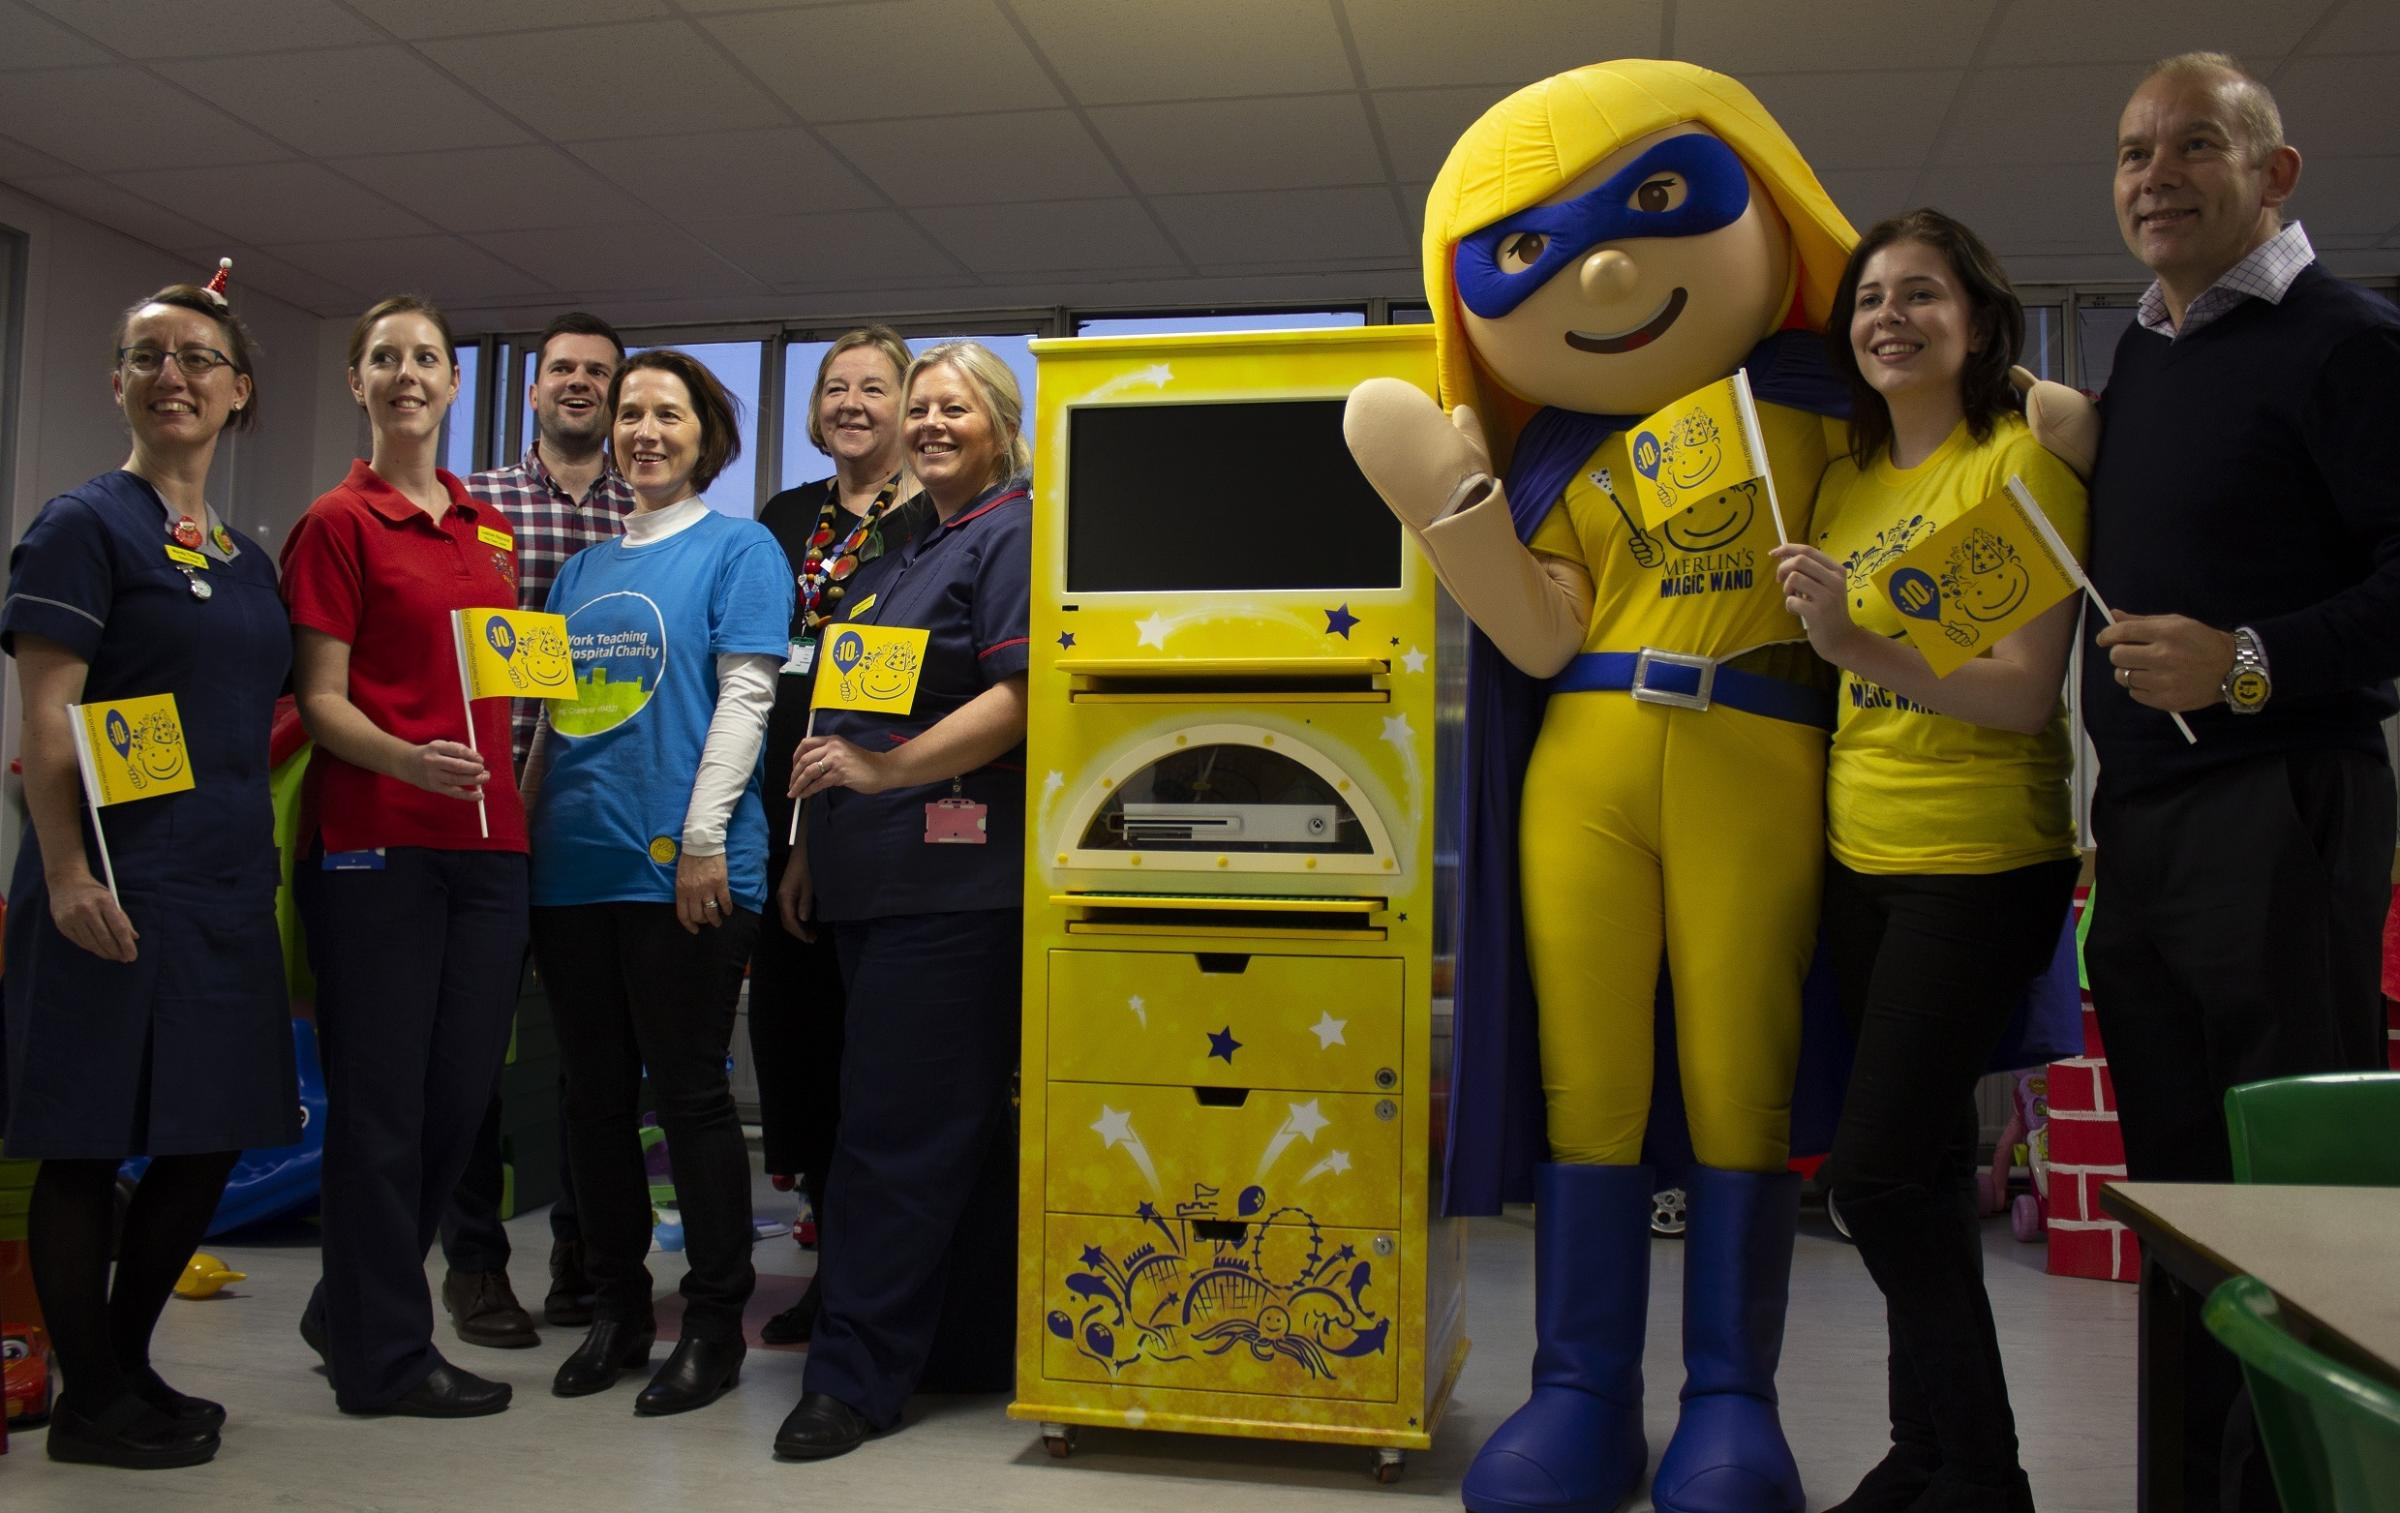 York Hospital children's ward staff, left, and the York Dungeon teamr  and York Dungeon tea show off the new Mobile Entertainment Unit